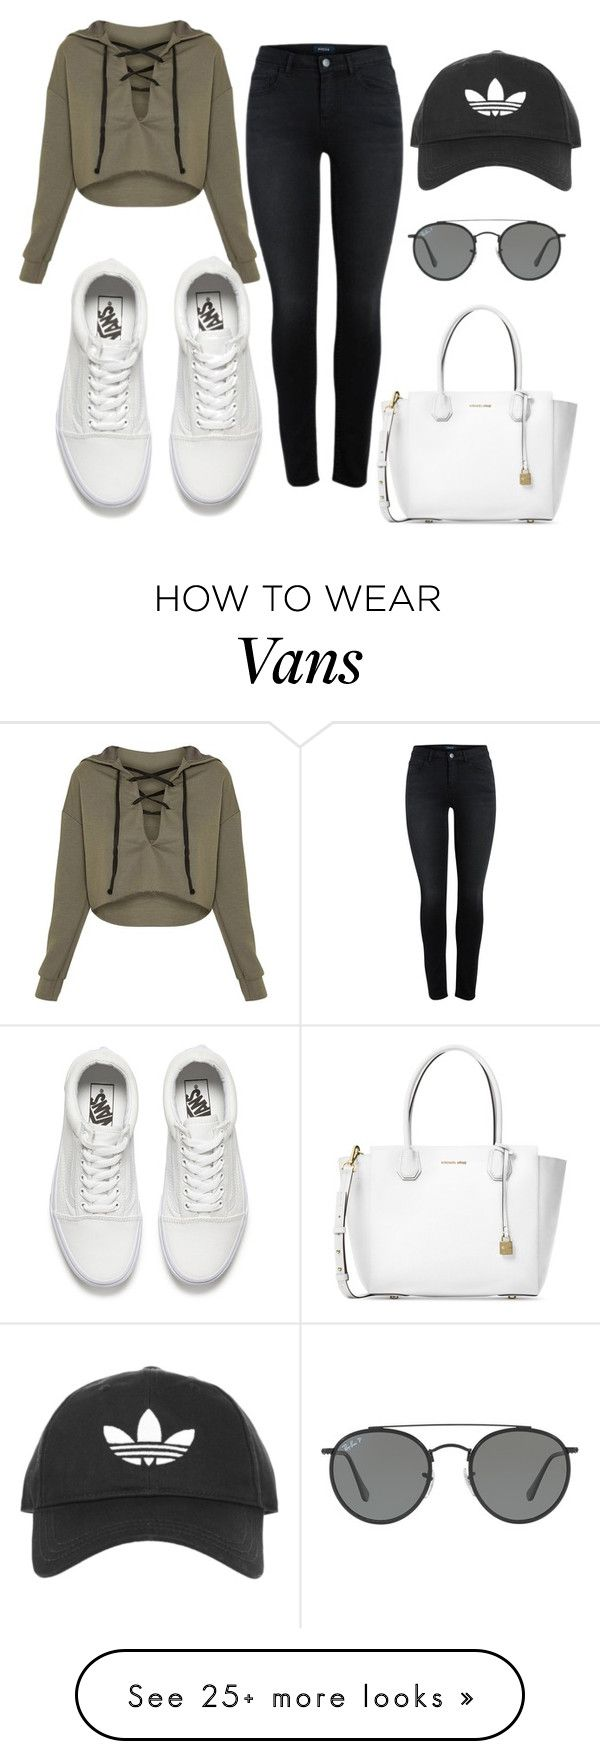 """out#2"" by kekkambreigns on Polyvore featuring Vans, Michael Kors, Ray-Ban and Topshop"